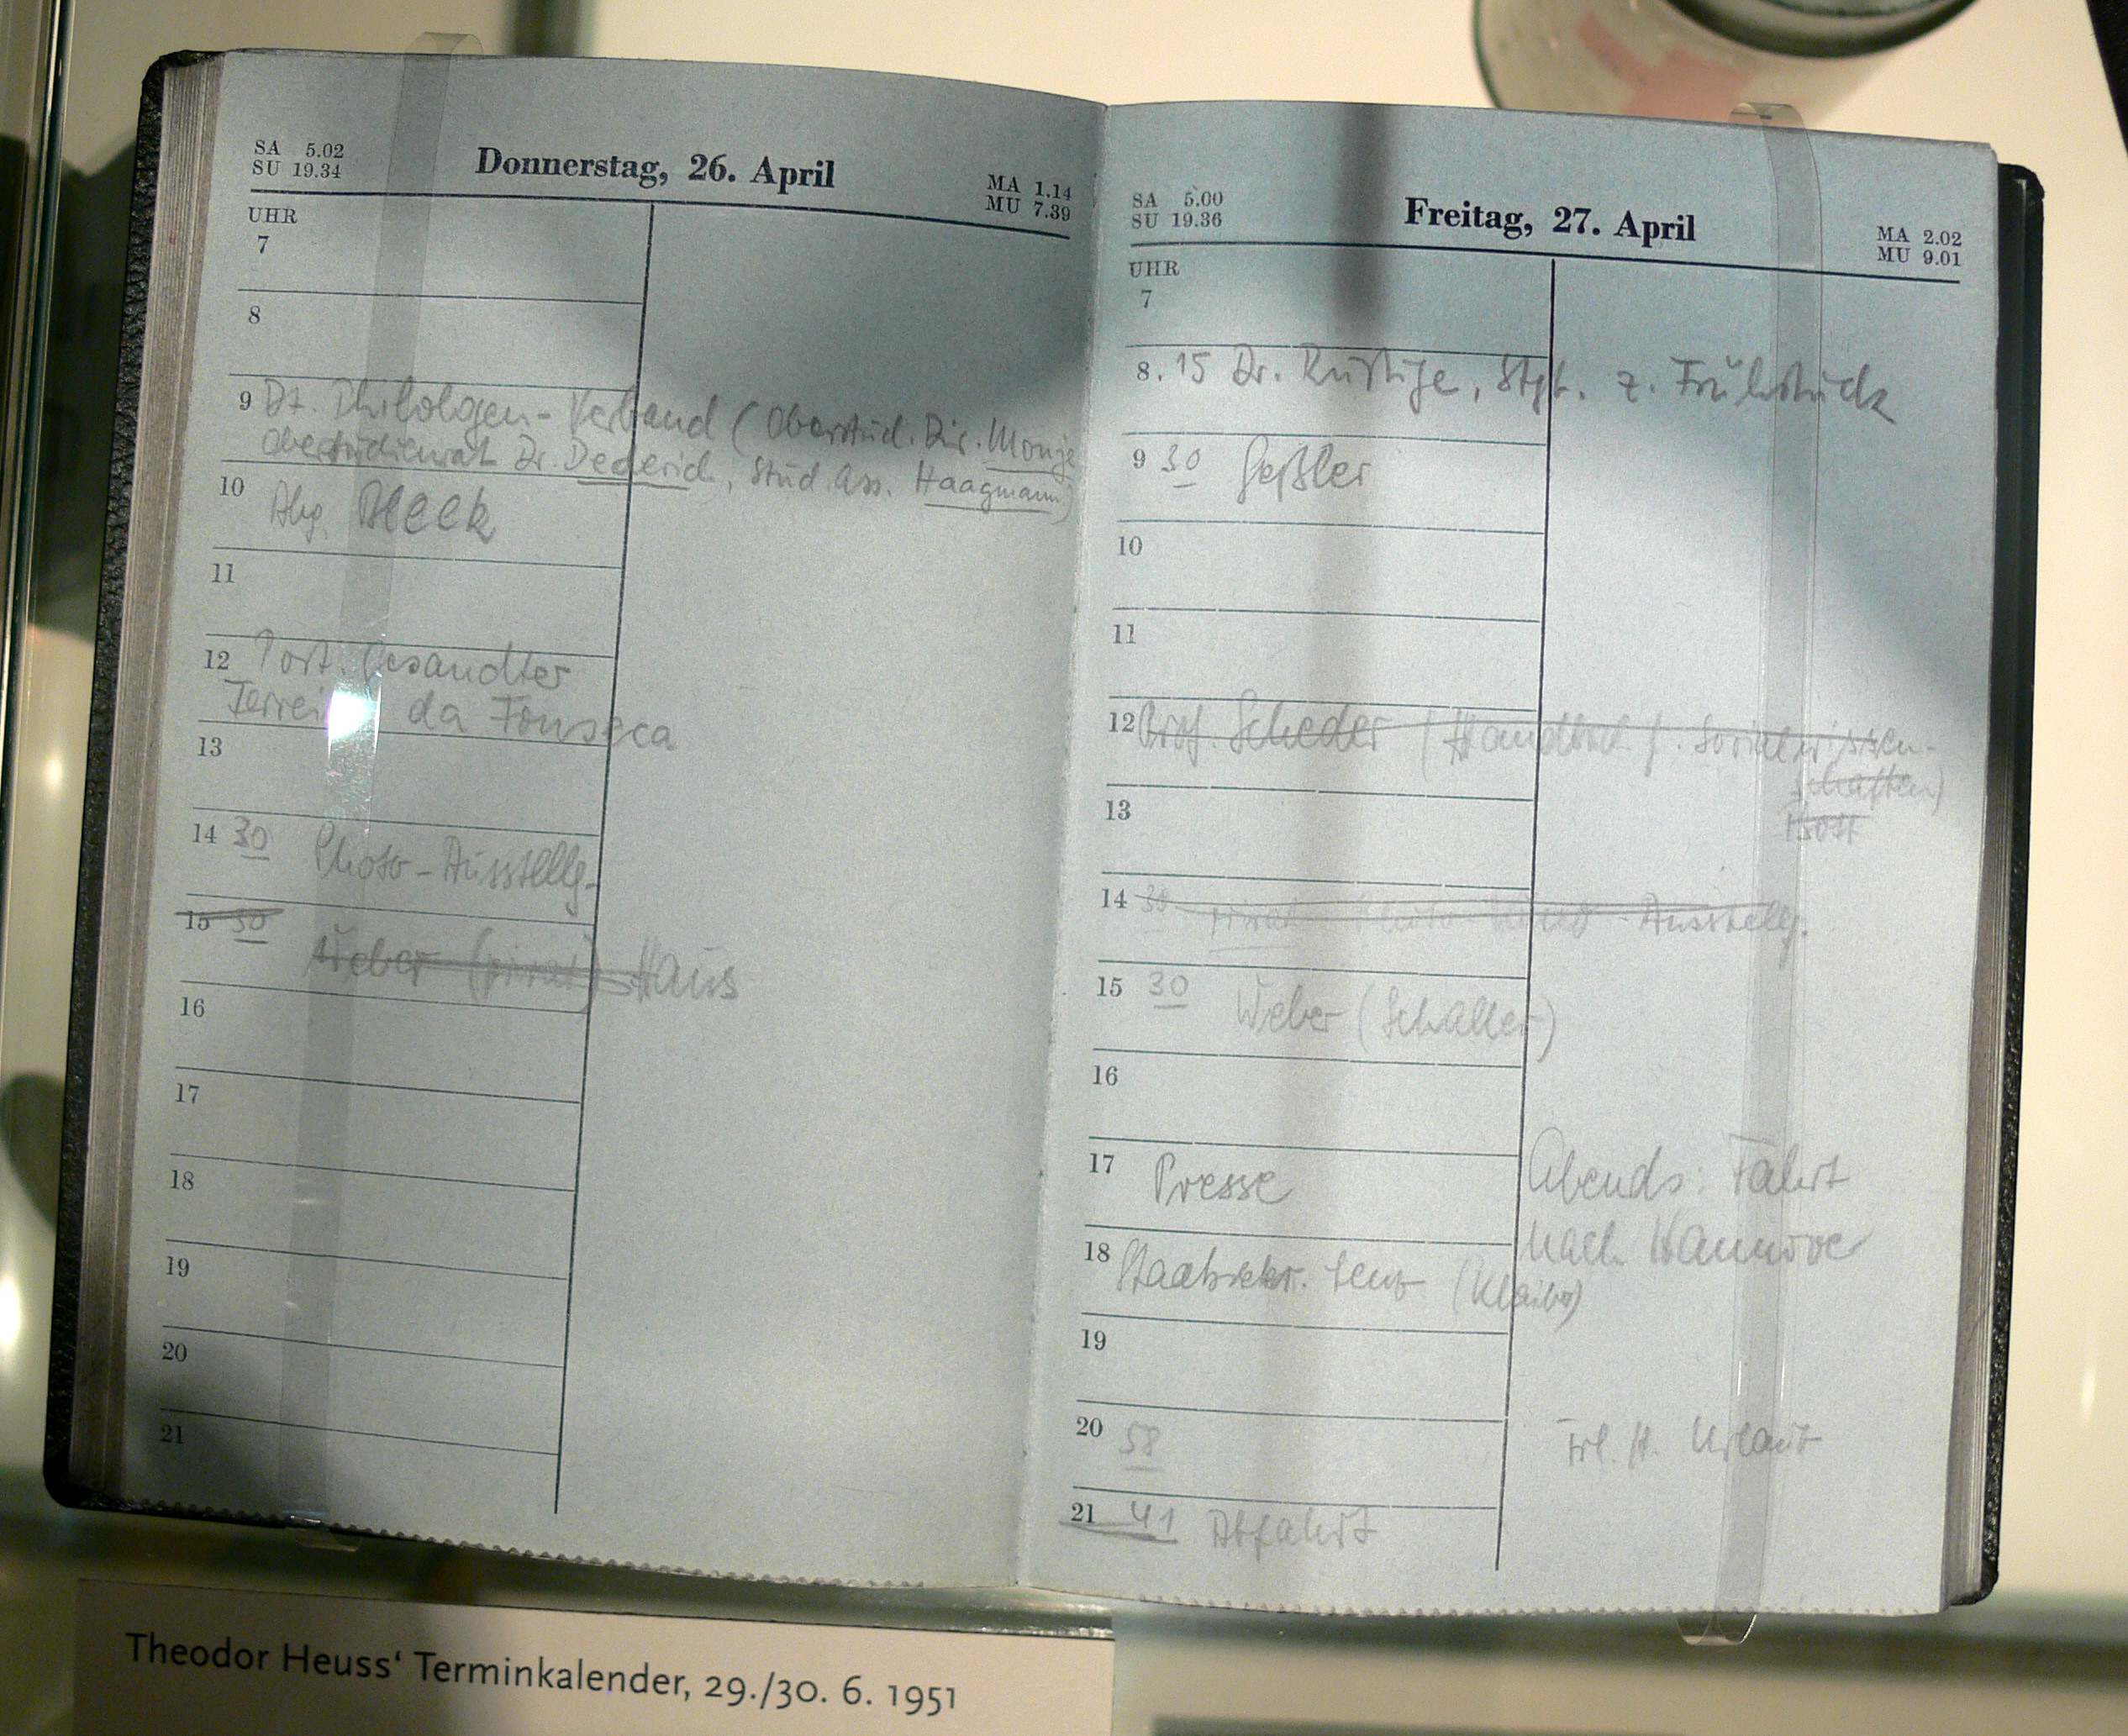 Appointment calendar of former German president Theodor Heuss